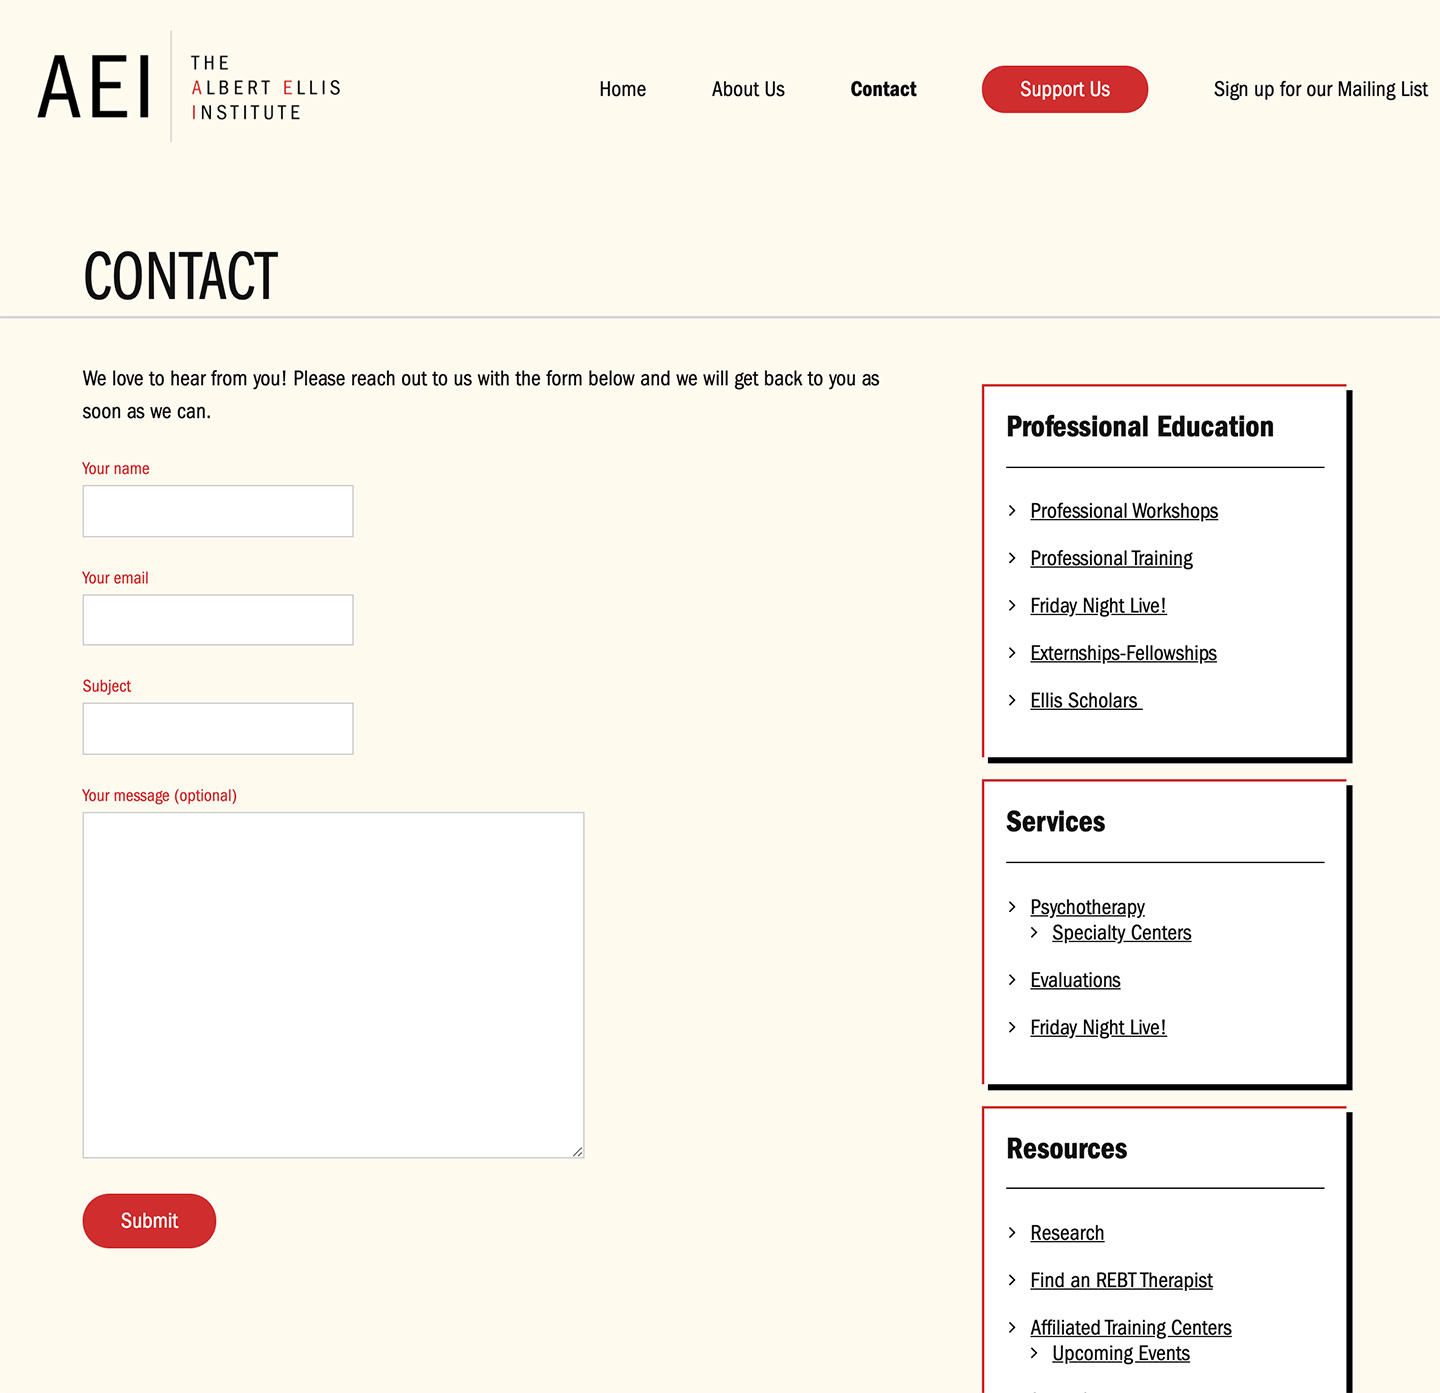 Albert Ellis Institute: Albert Ellis Institute - Contact Forms